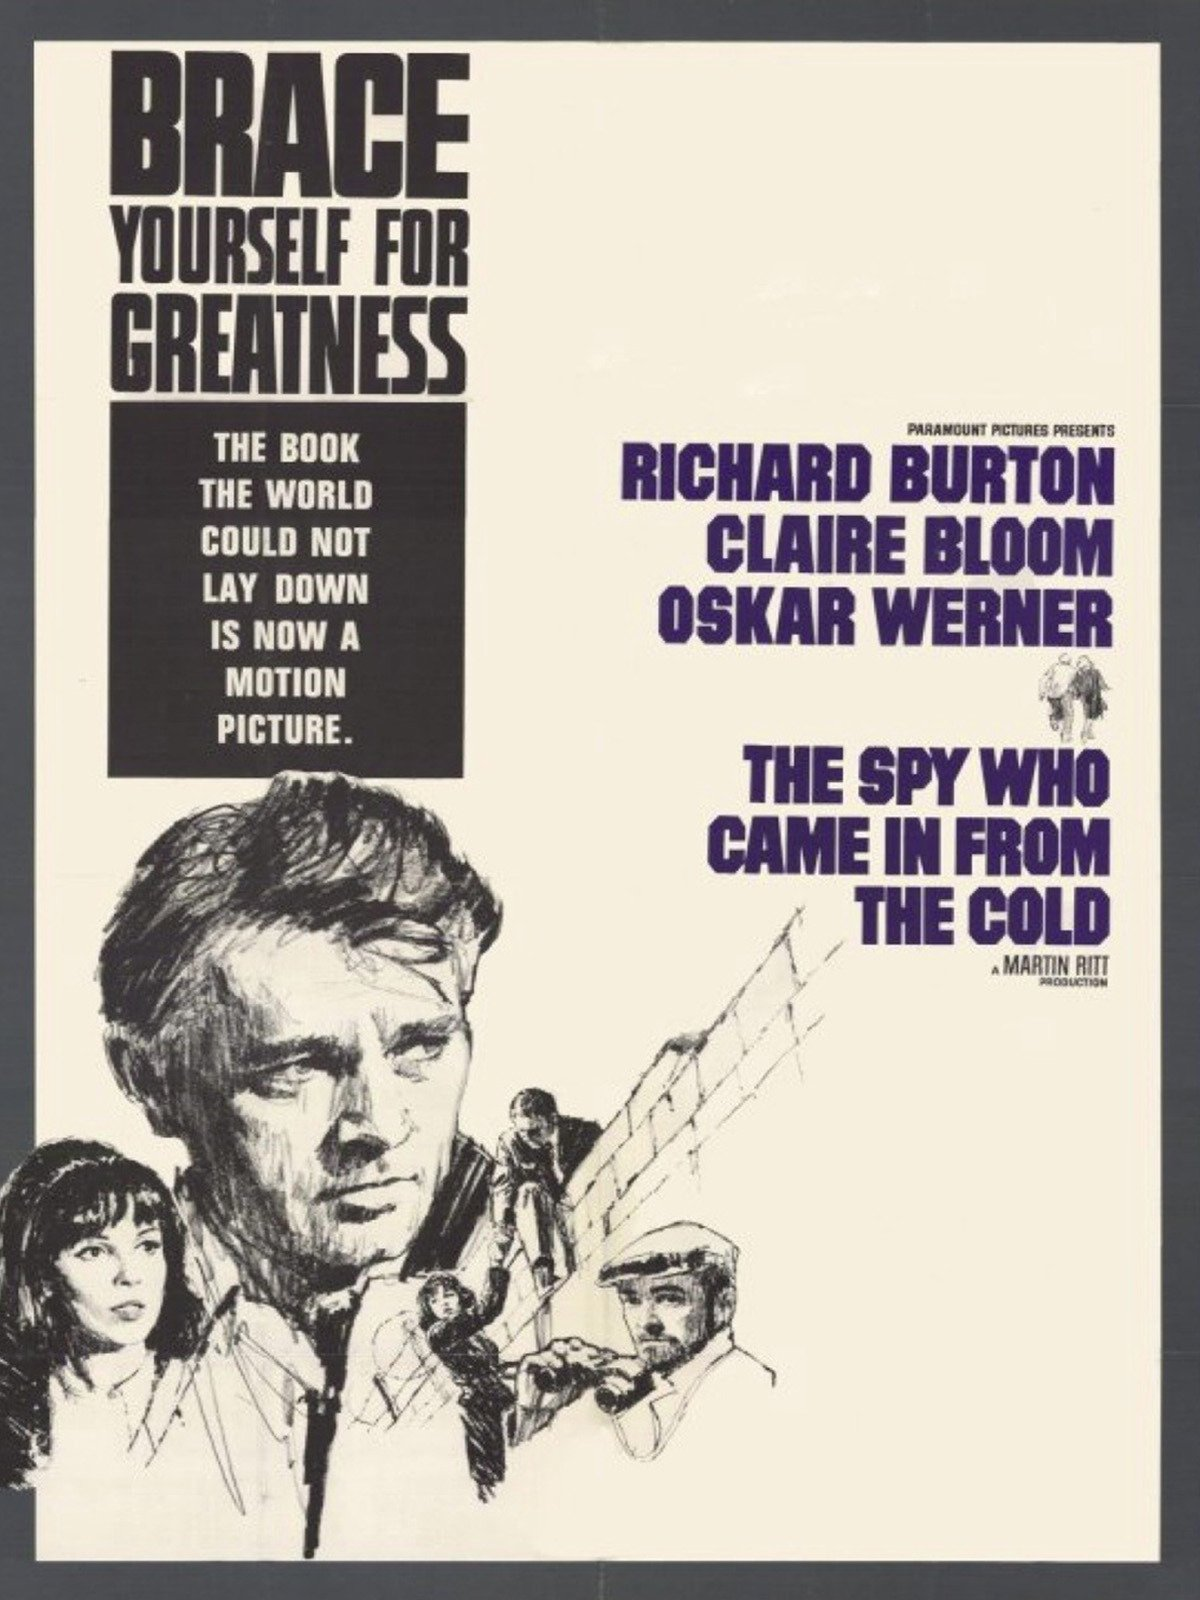 The Spy Who Came in From the Cold Watch online now with Amazon